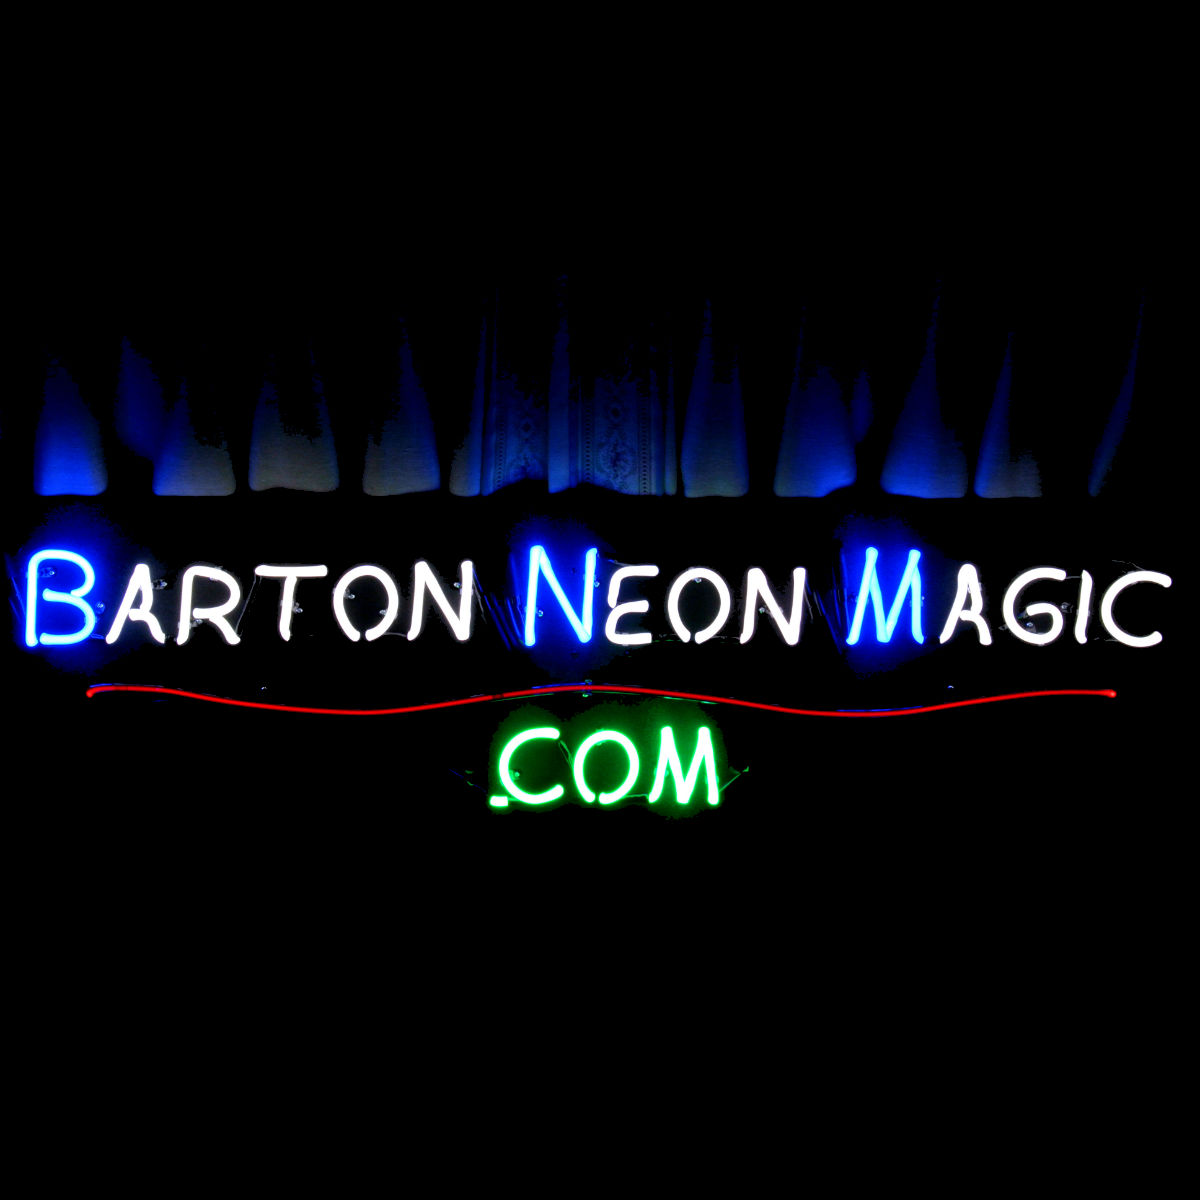 Beautiful Custom Neon Artworks by John Barton - BartonNeonMagic.com